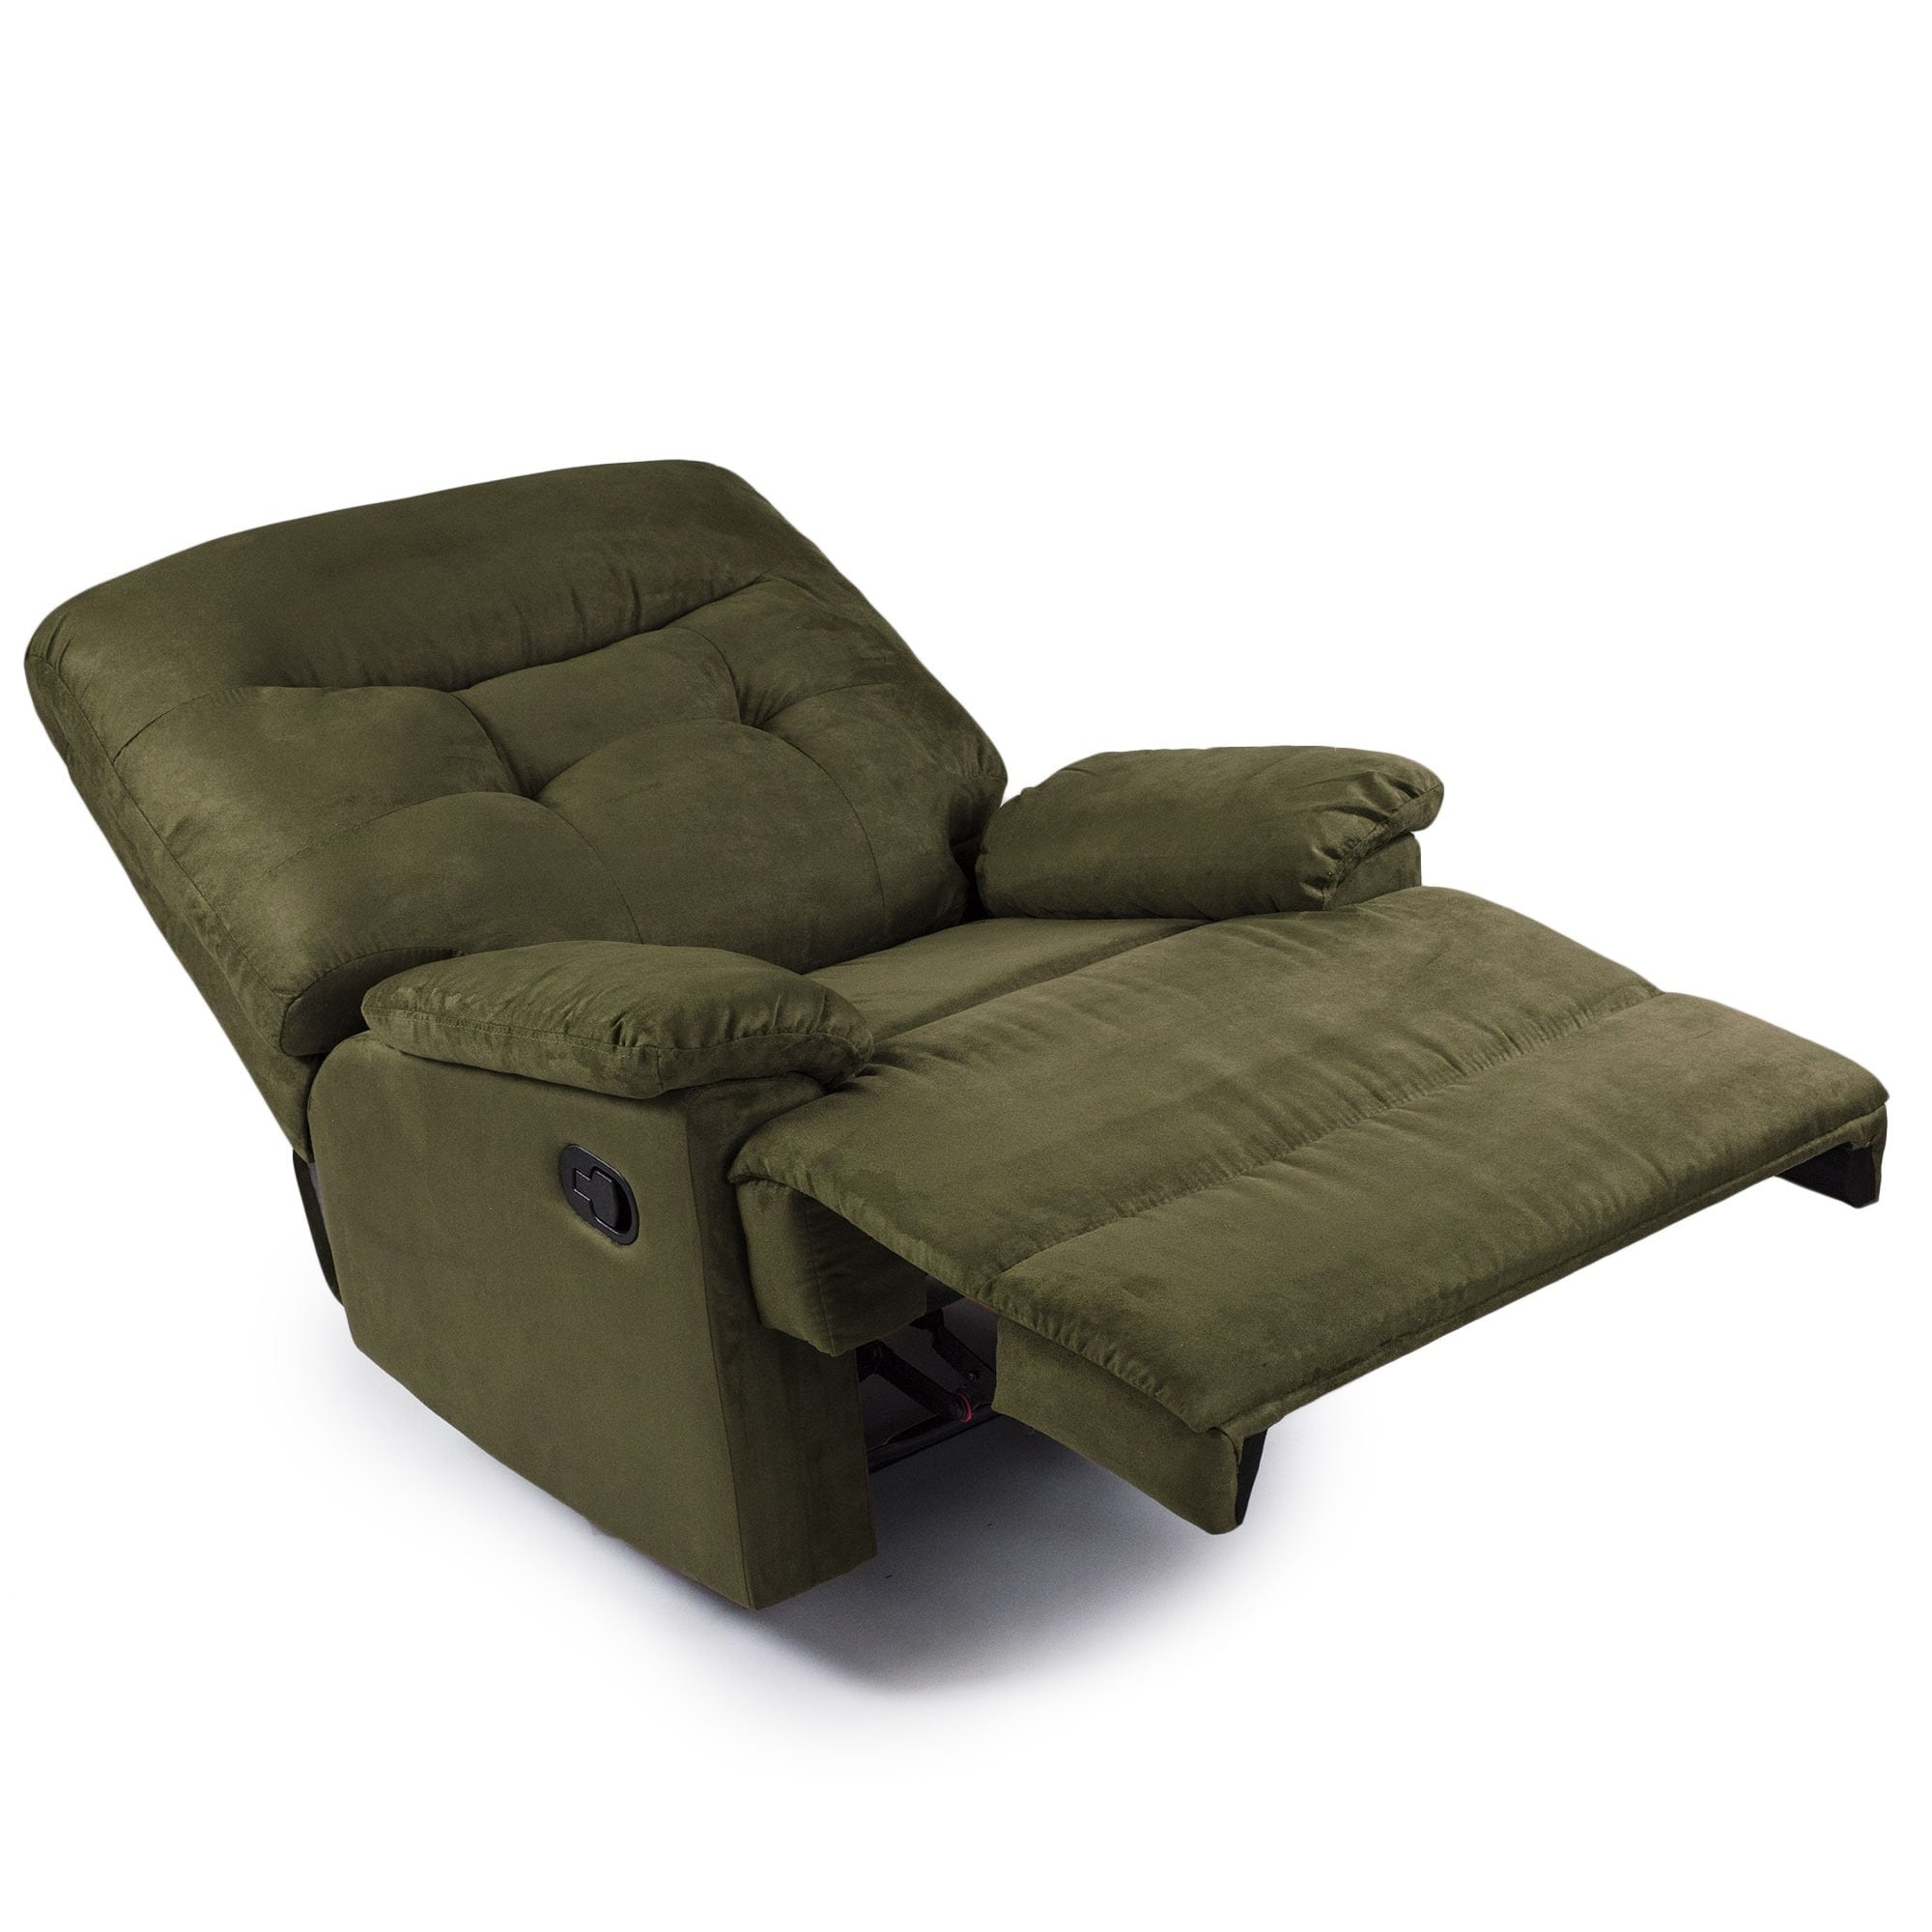 Shop Big Jack Microfiber Recliner Chair, 7PM Collection By Ocean Bridge    Free Shipping Today   Overstock   13743116